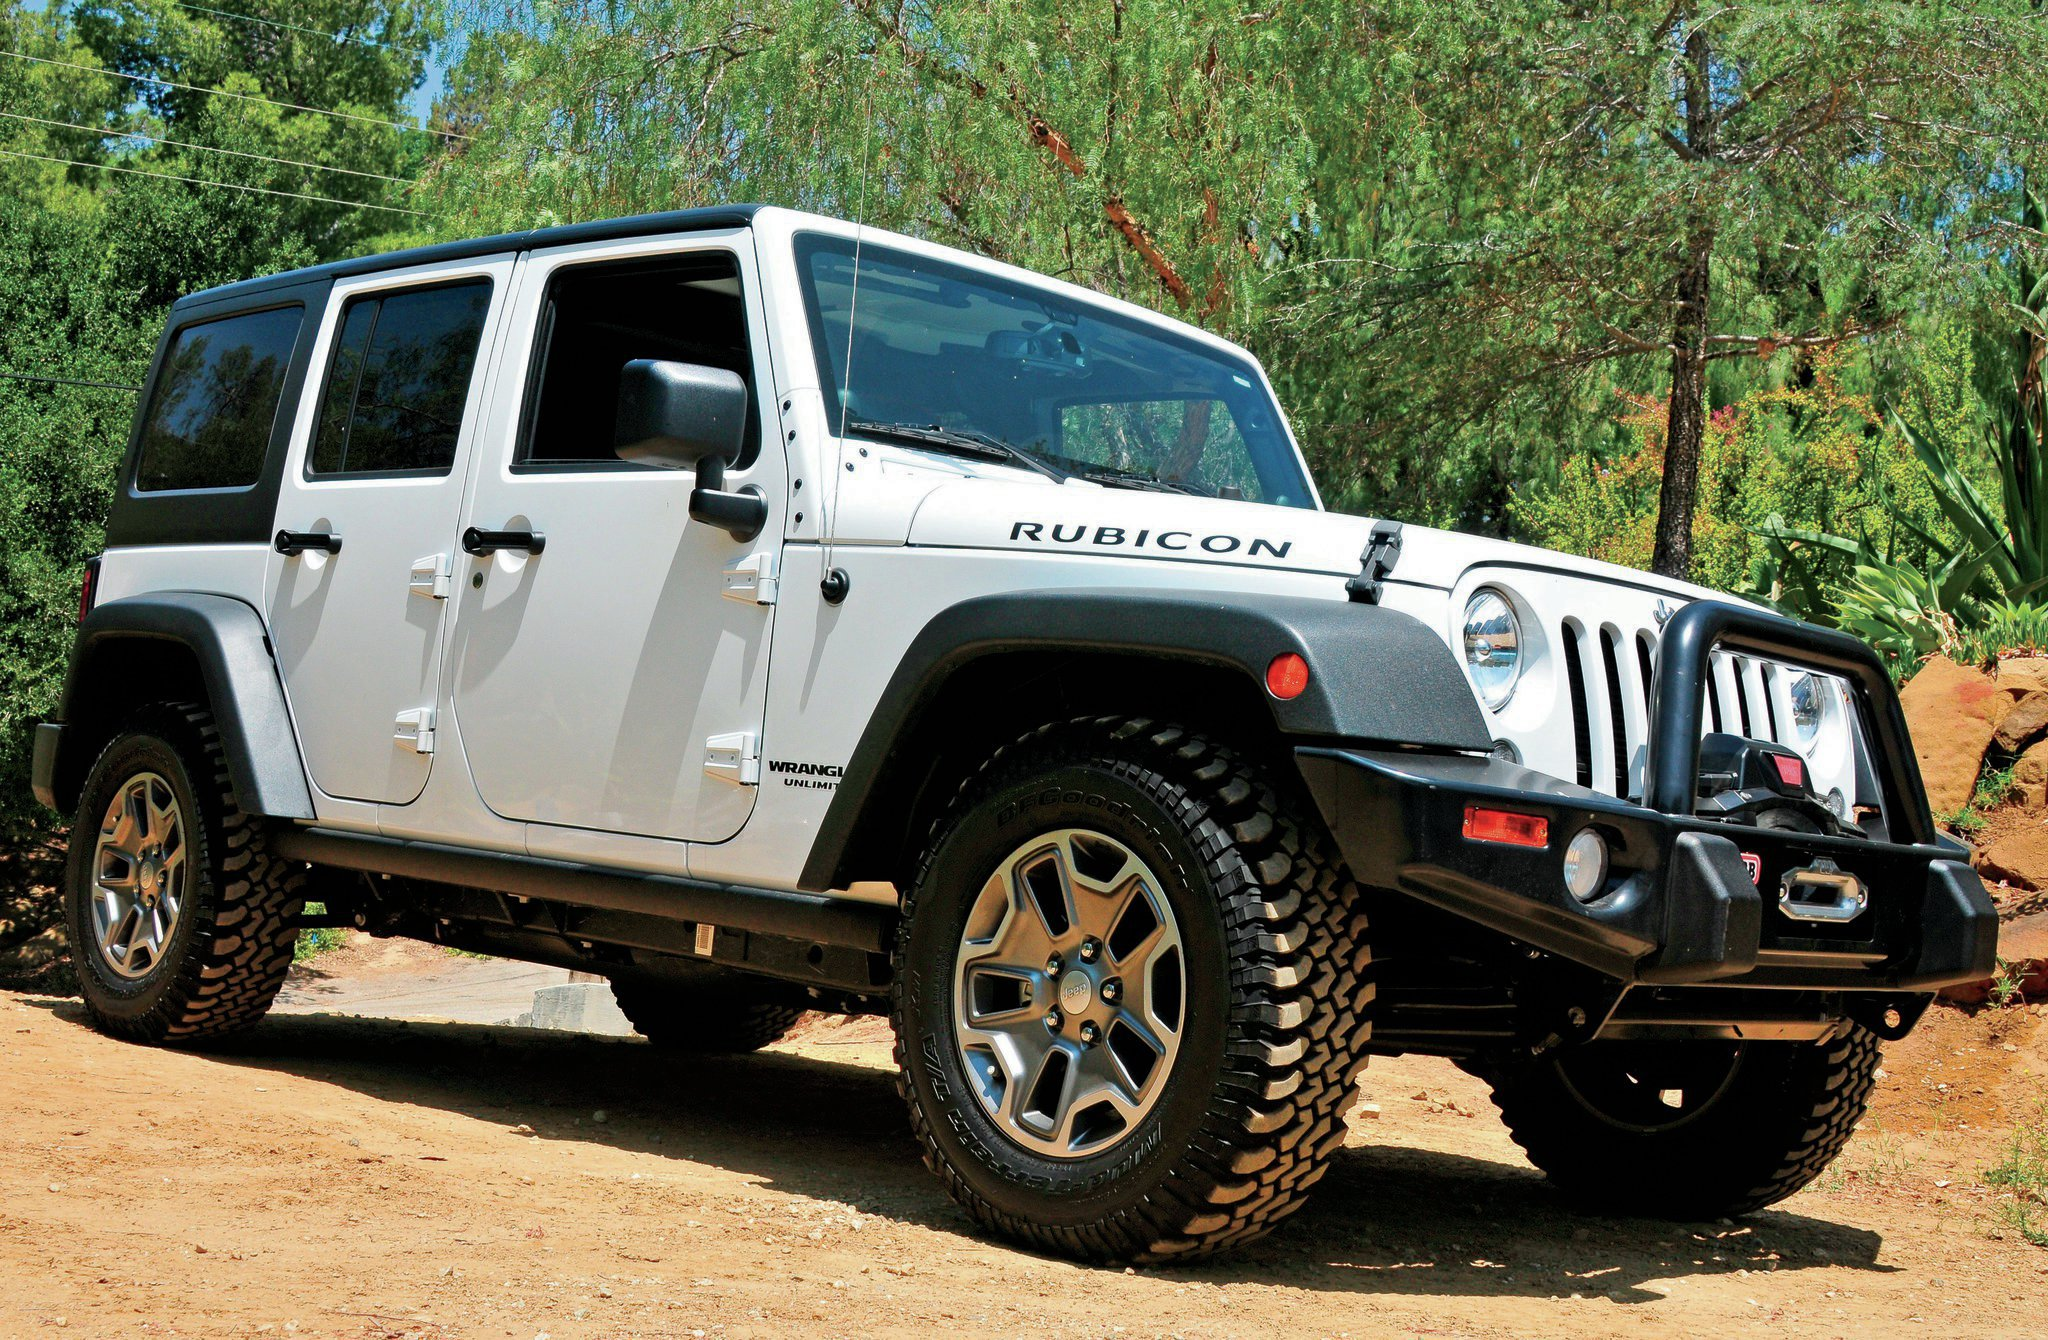 Starting with a well-equipped four-door JK Rubicon, there wasn't much else that needed to be done. A dealer had already added an ARB bumper and Warn winch, and stock 4:1 transfer case gears and 4.10:1 axle gears gave a great crawl ratio. Selectable lockers front and rear, along with a disconnecting sway bar, also help out tremendously in the dirt. Without getting too radical, just about the only things left to do was to add larger mud-terrains and give this JK a few more inches of height. With the kit at the house, we quickly knocked out the first of a three-day project. With two friends, three of us tore down the front end in a matter of minutes, in the dirt, with a floor jack and a couple jackstands.